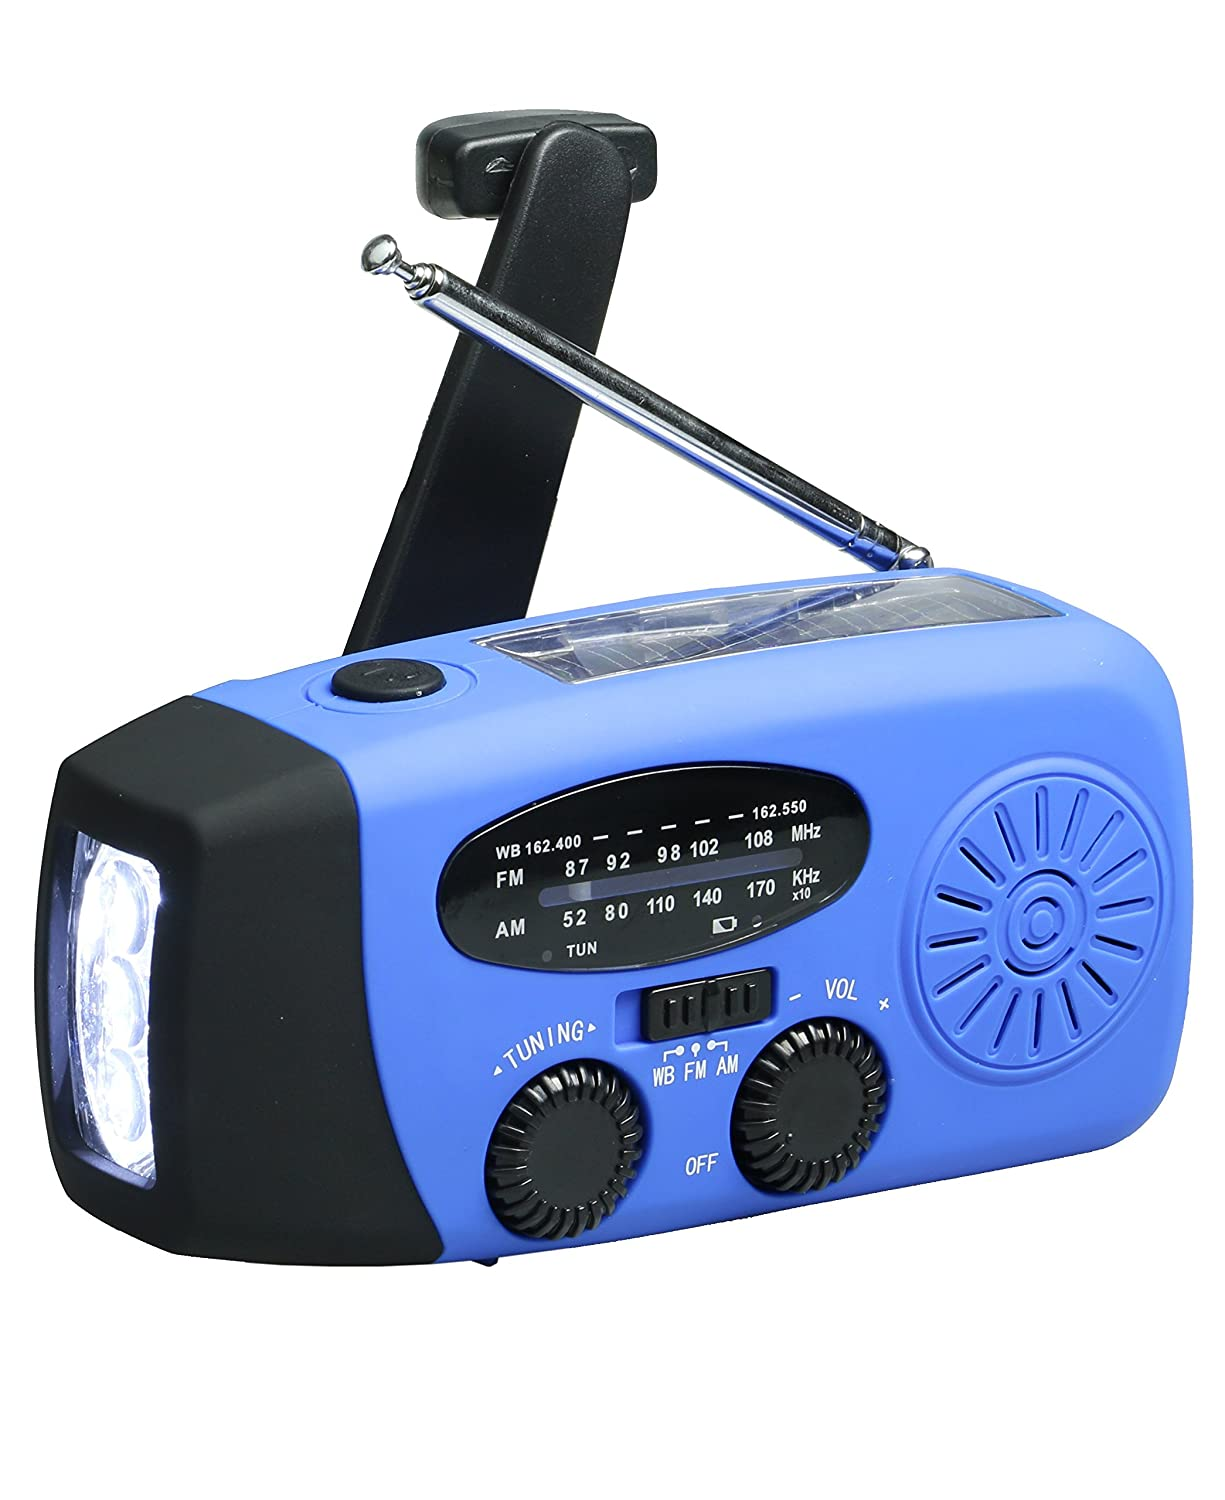 Dynamo Emergency Solar Hand Crank Self Powered AM/FM/NOAA Weather Radio, LED Flashlight, Smart Phone Charger Power Bank with Cables